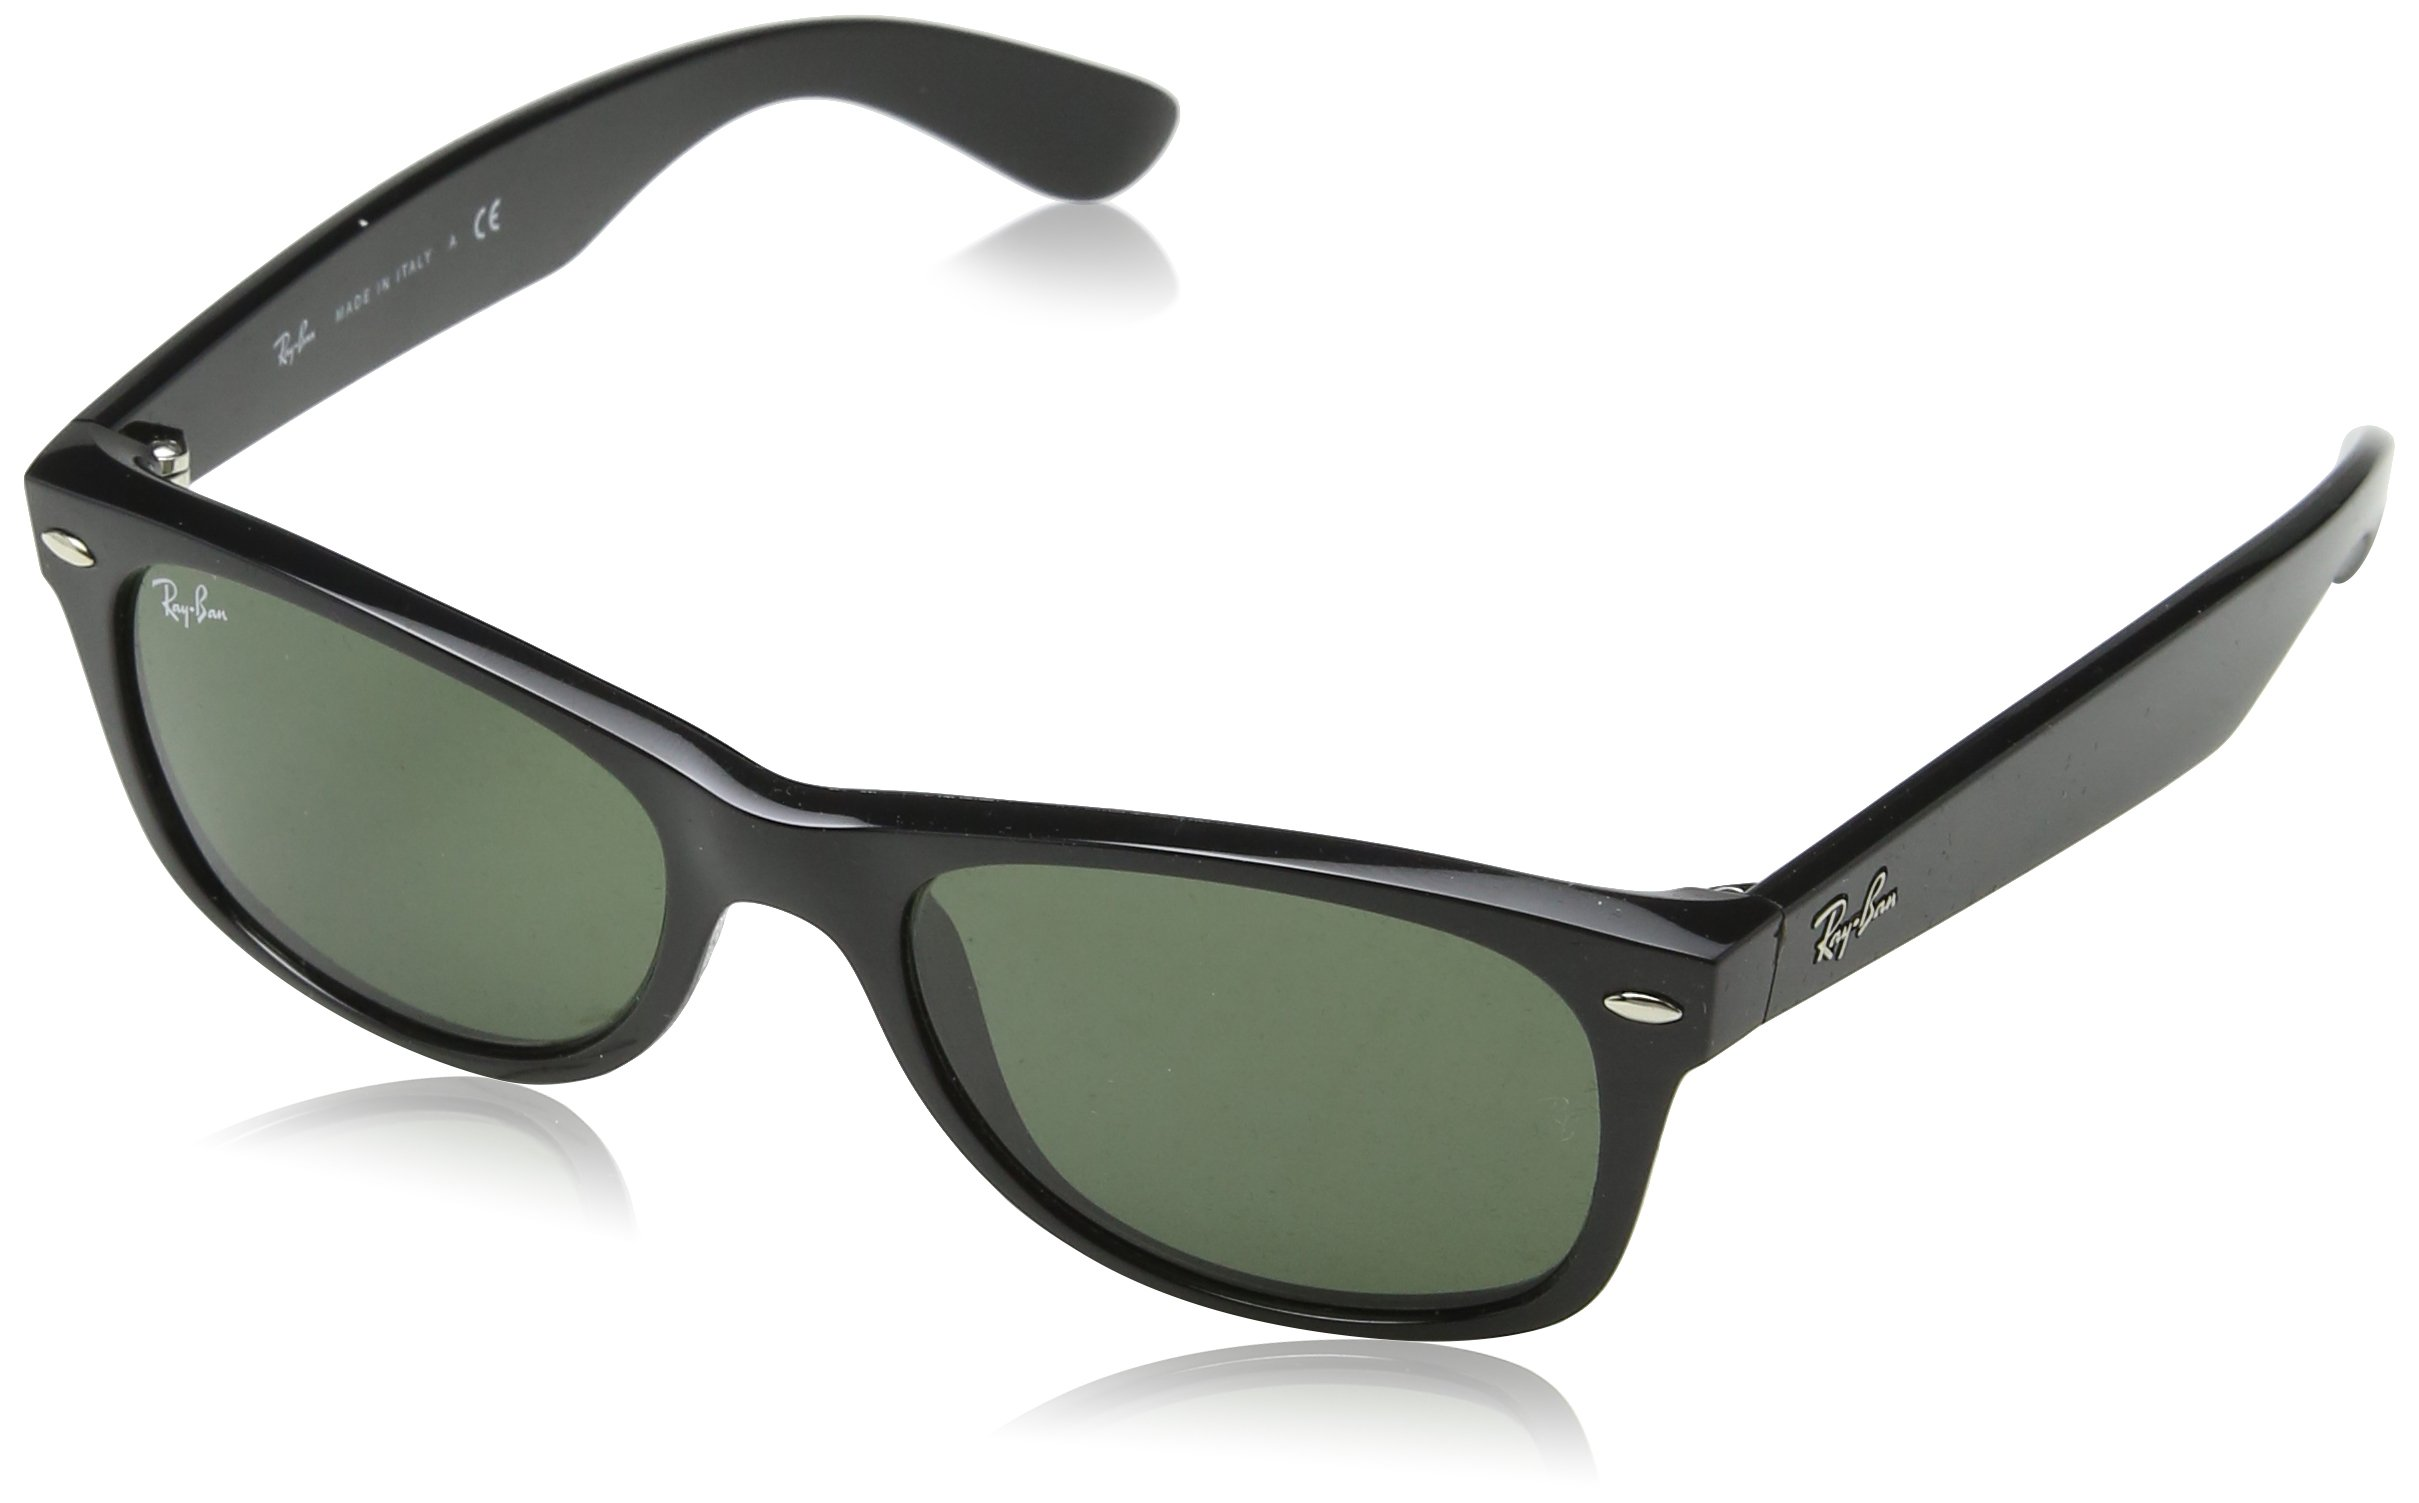 bee40ac65b Galleon - Ray-Ban Sunglasses - RB2132 Wayfarer   Frame  Top Black On Transparent  Lens  Green Polarized (55mm)